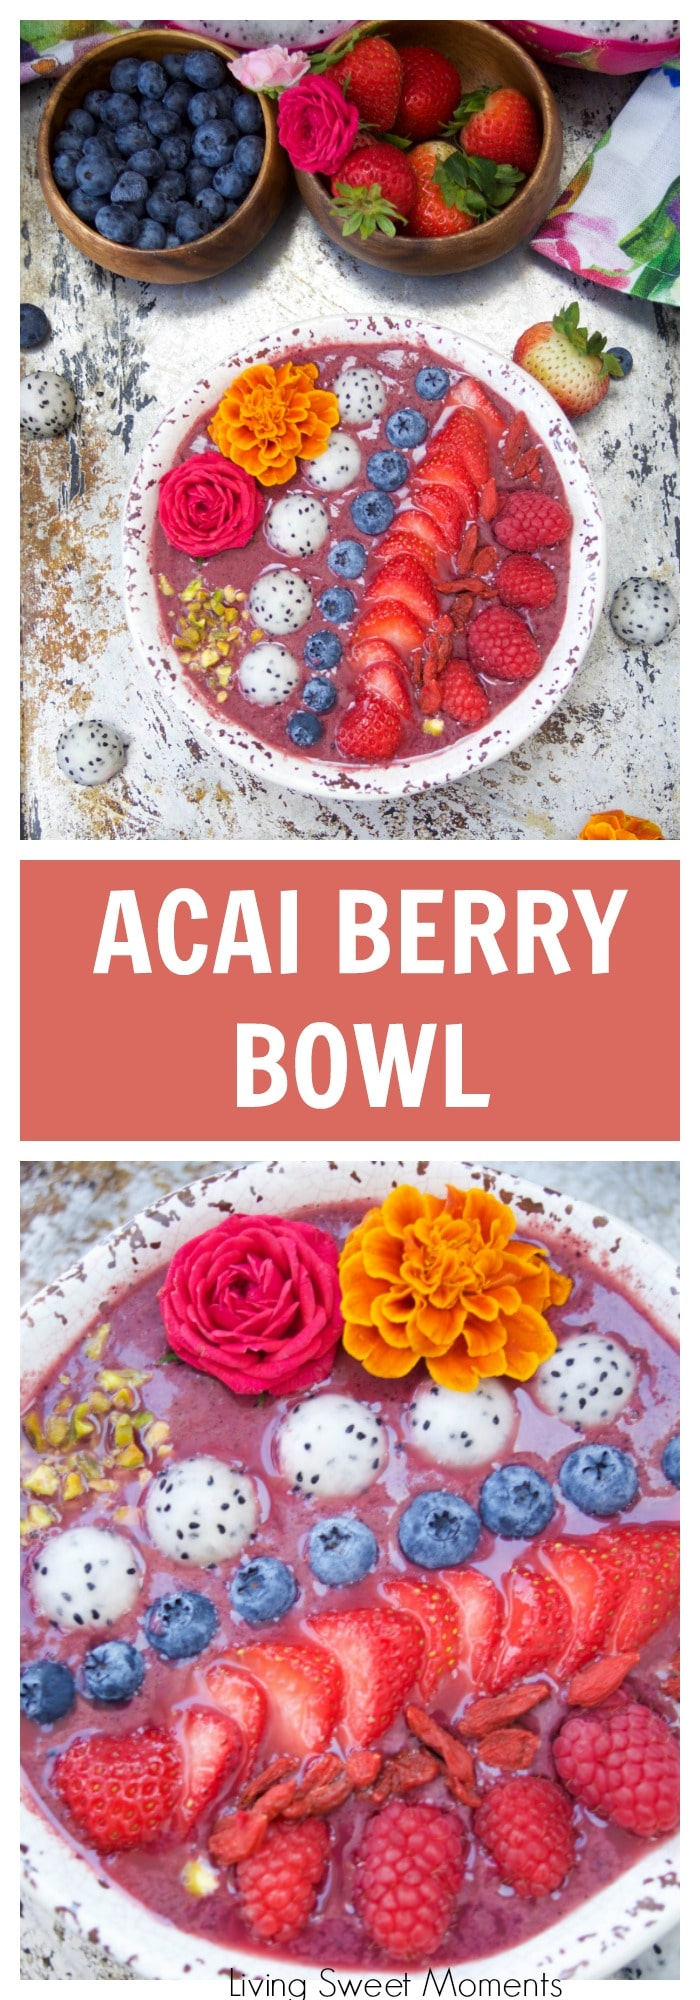 How To Prepare And Eat This Delicious Acai Bowl Recipe Is Blended With  Berries, Dragonfruit, And Yogurt It's